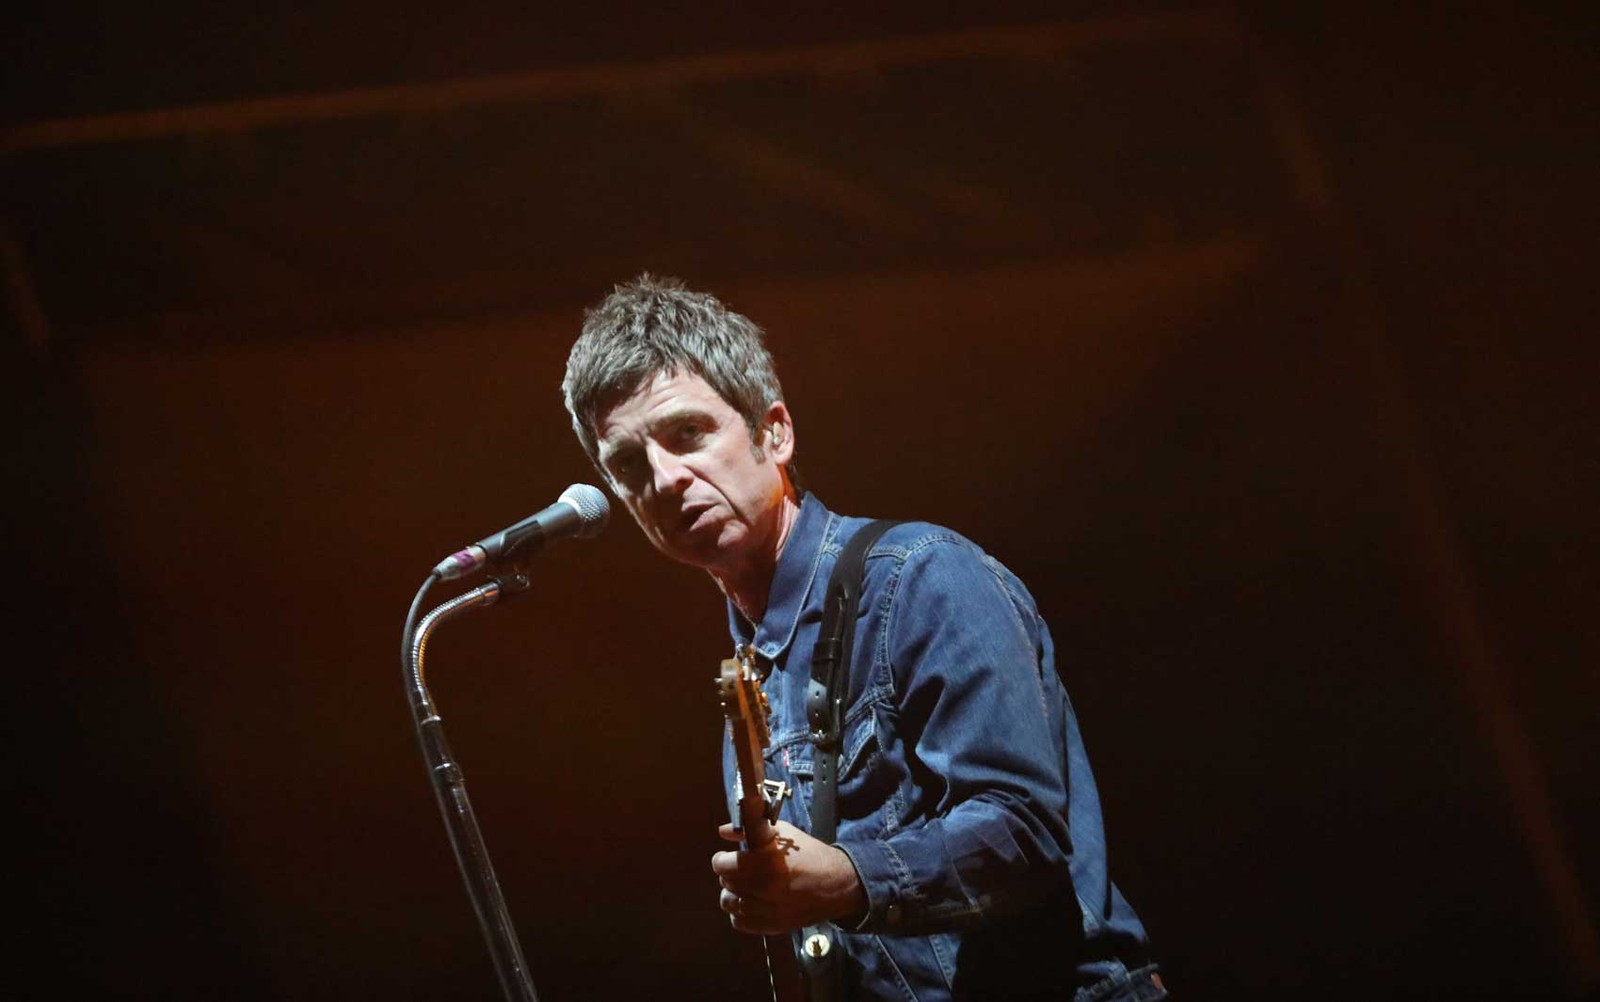 <div>Noel Gallagher e Foster the People fazem shows mornos no Summer Break Festival em SP</div>